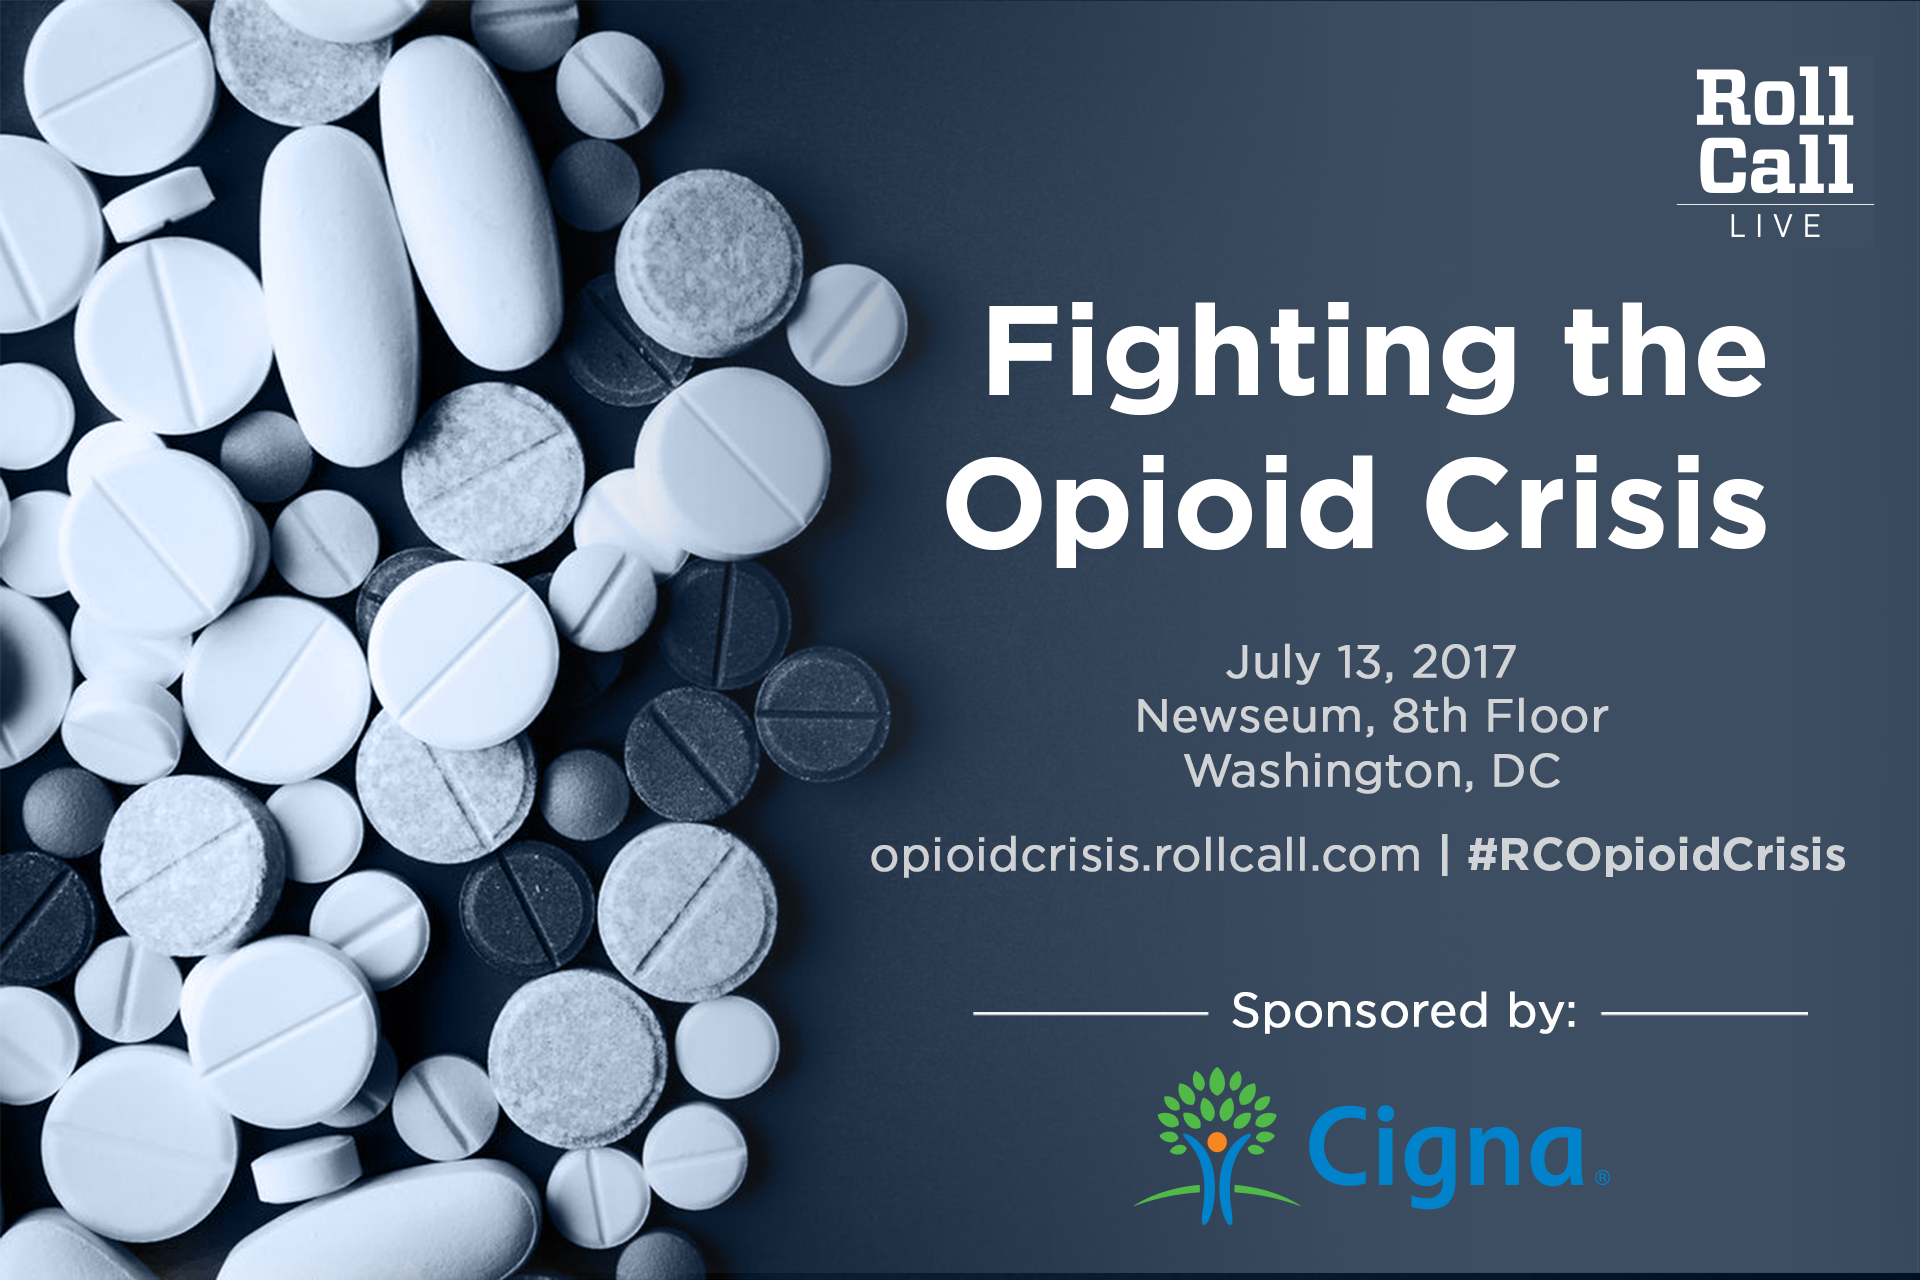 Fighting the Opioid Crisis